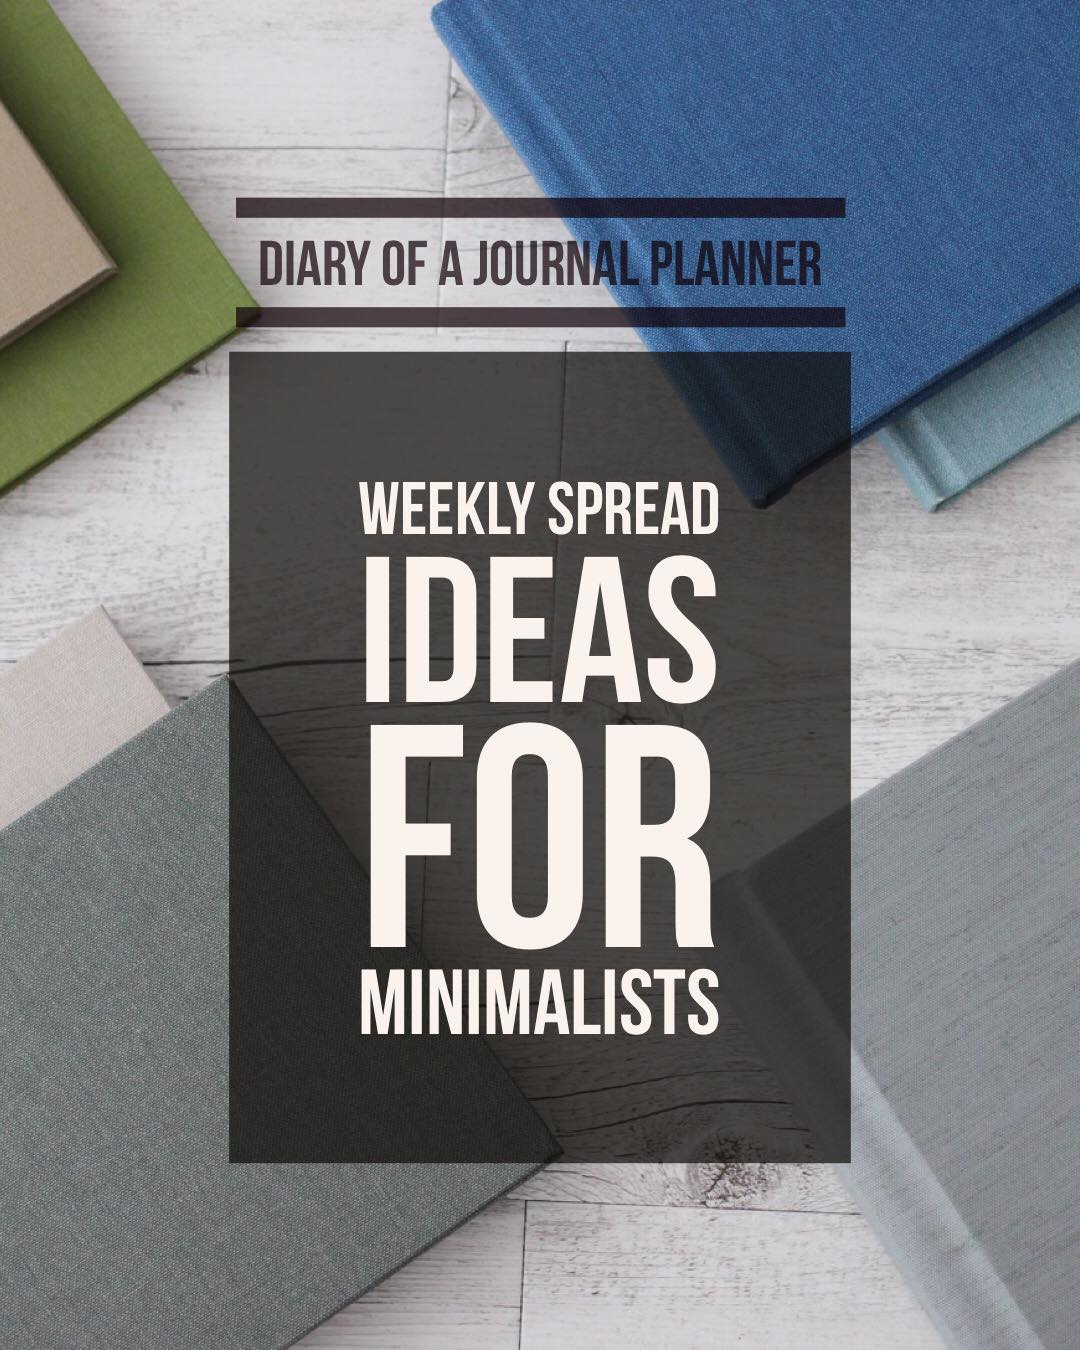 Weekly layout ideas for planners and bullet journal. Perfect for minimalists and busy people.